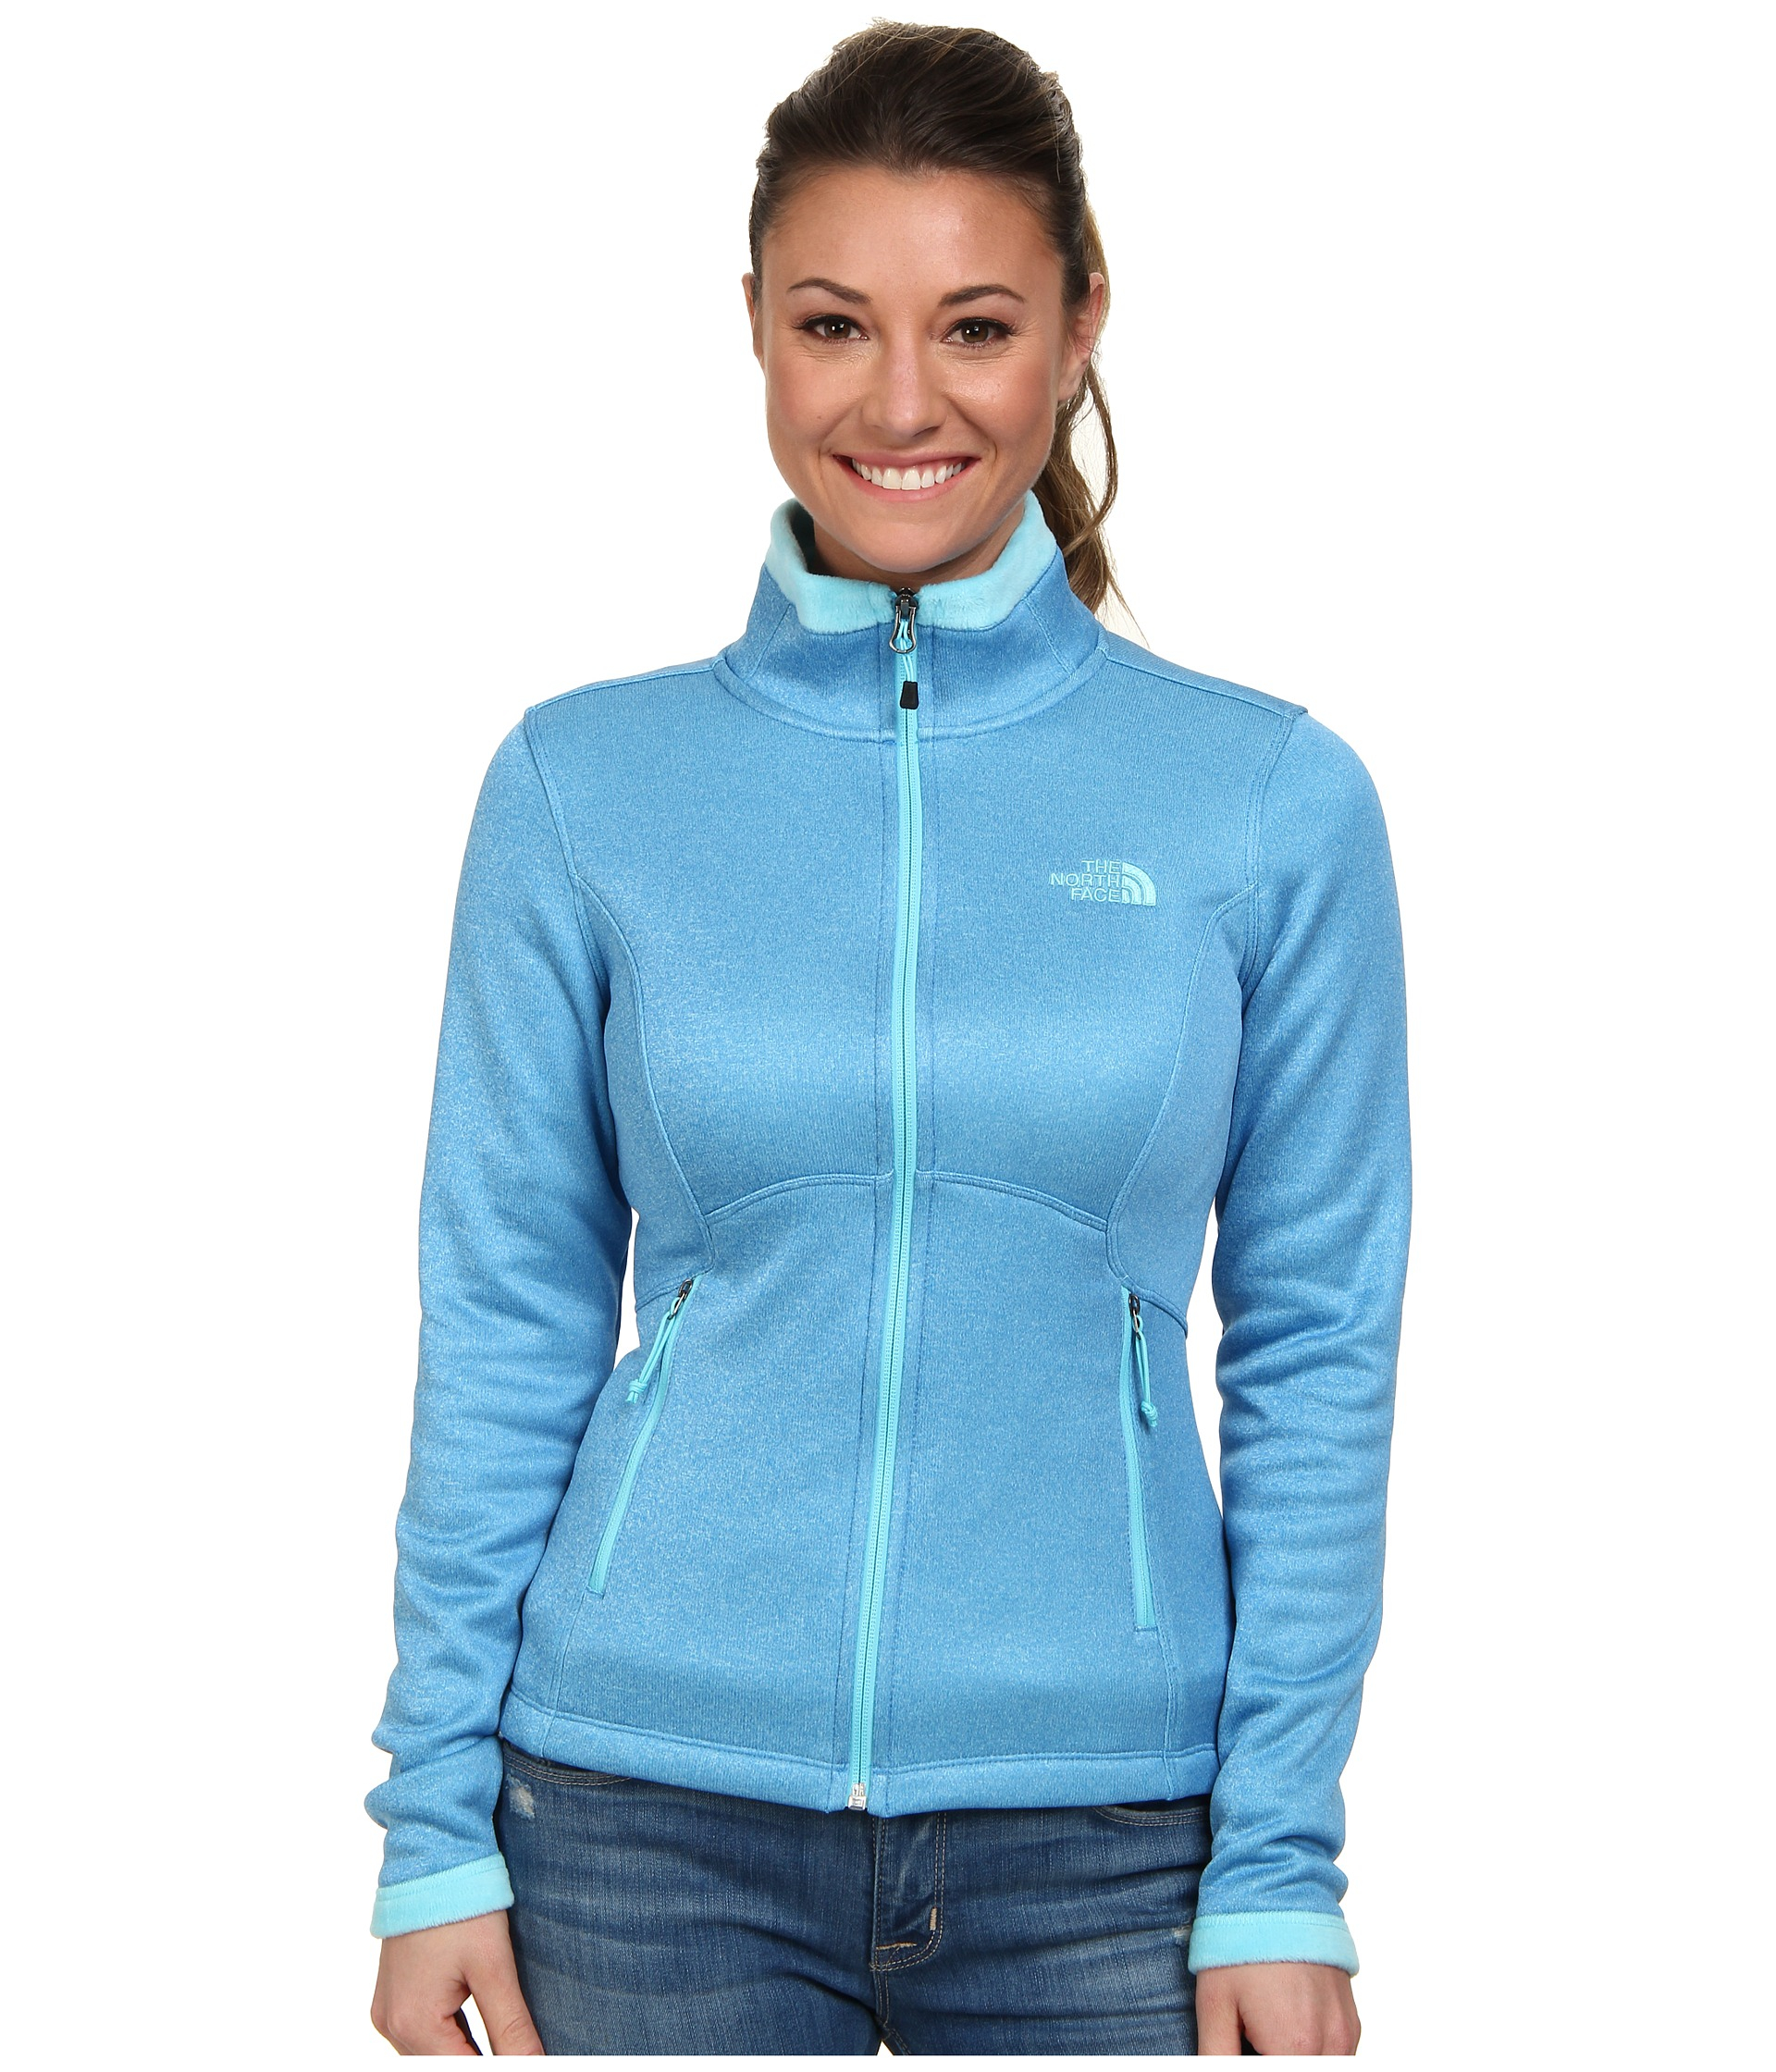 560a5cd40 The North Face Blue Agave Jacket